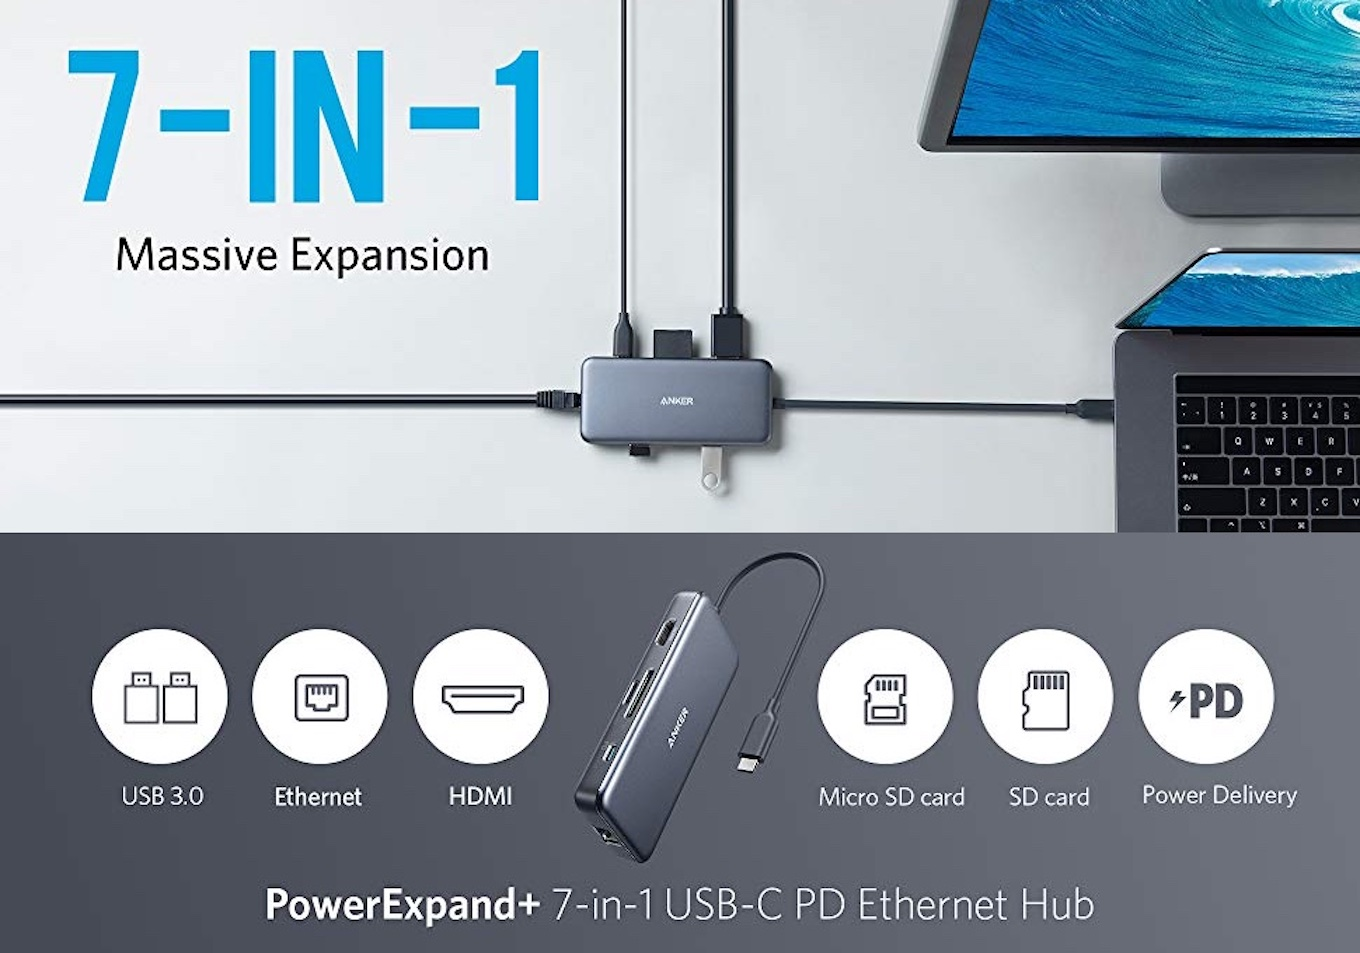 Anker PowerExpand+ 7-in-1 USB-C